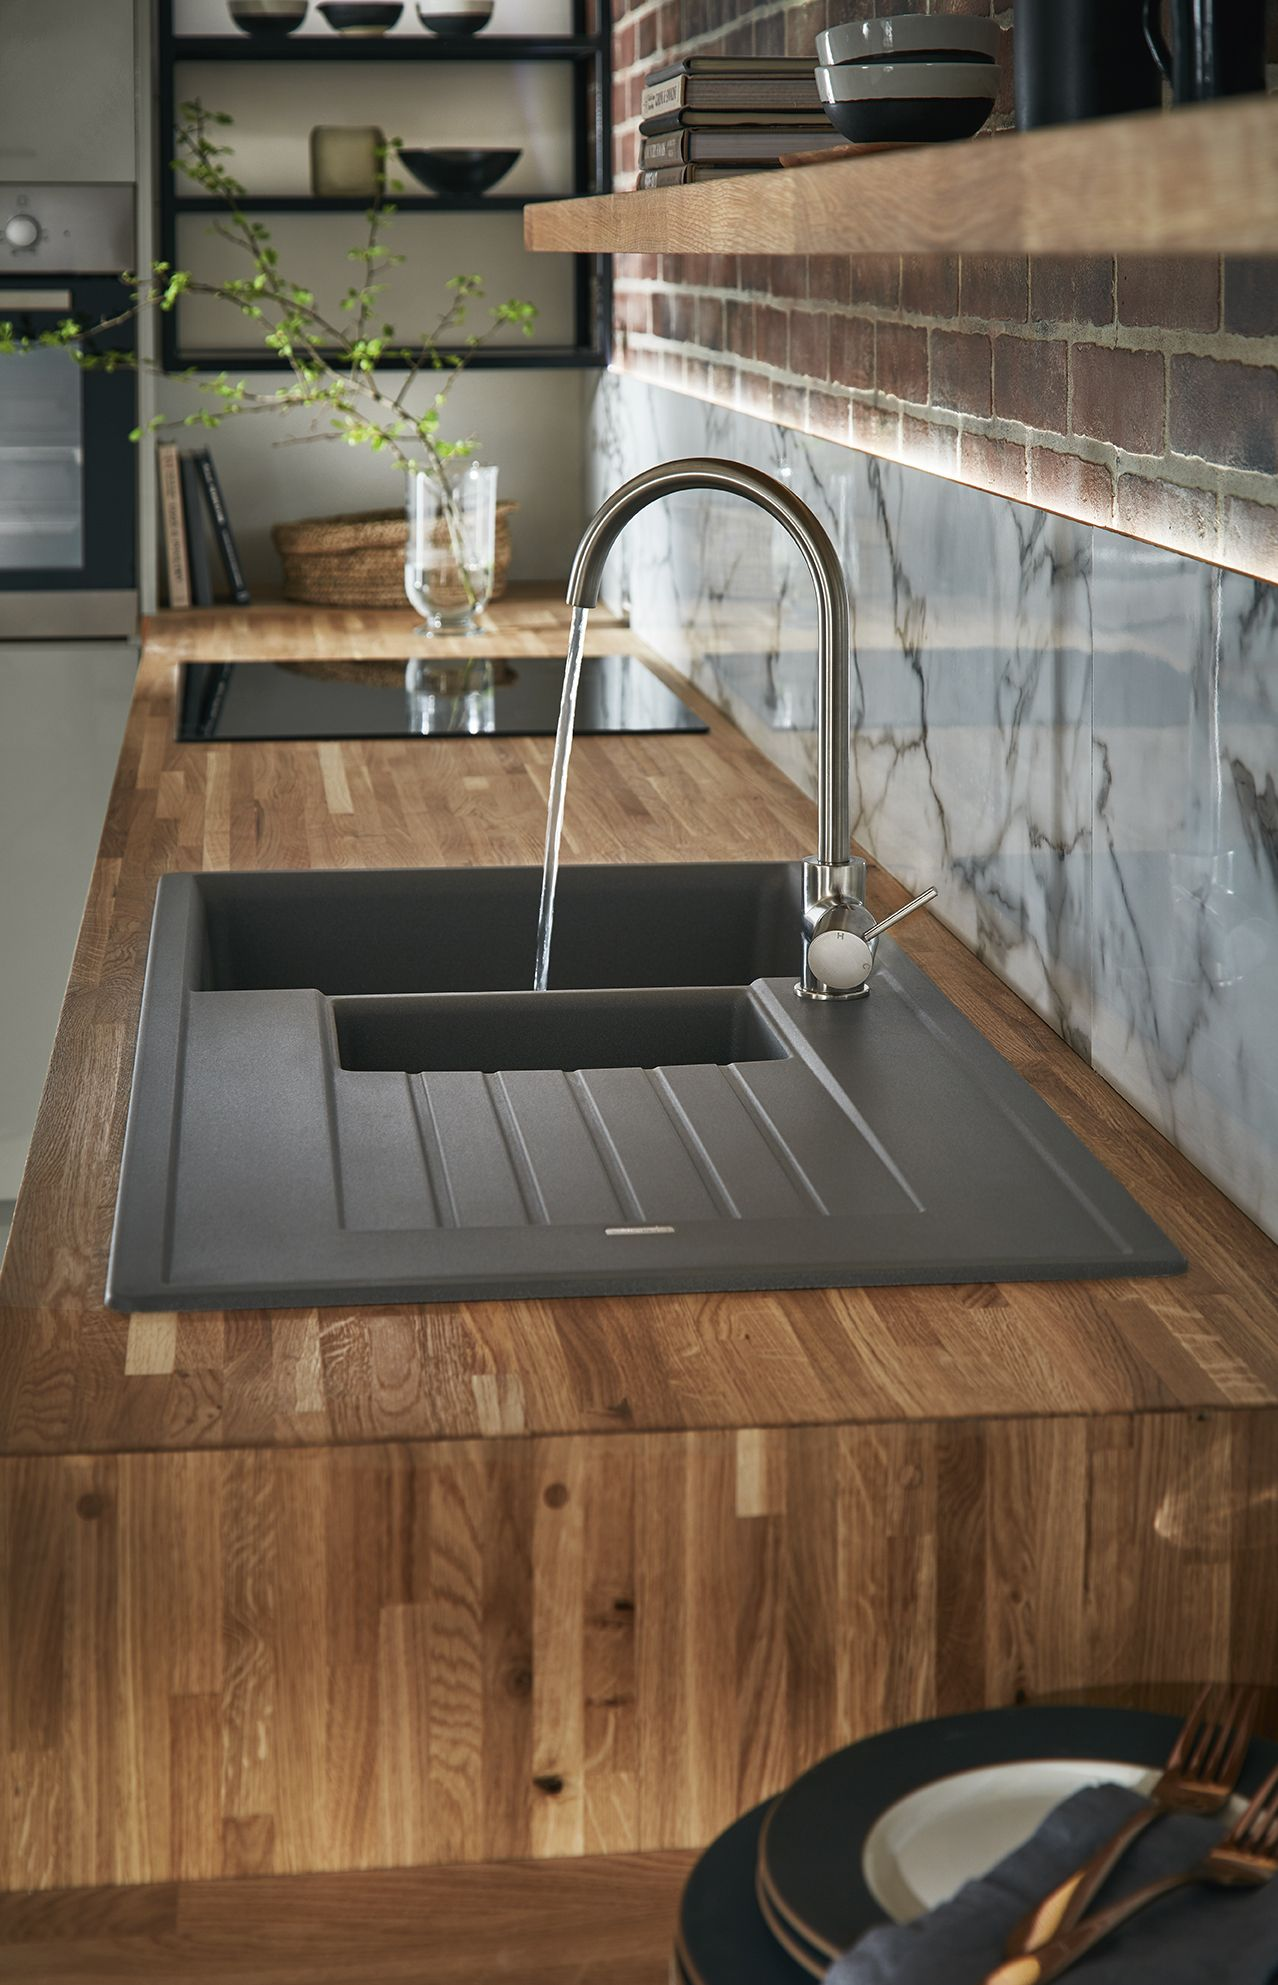 Our black granite composite sink contrasts beautifully in the solid rustic oak worktop